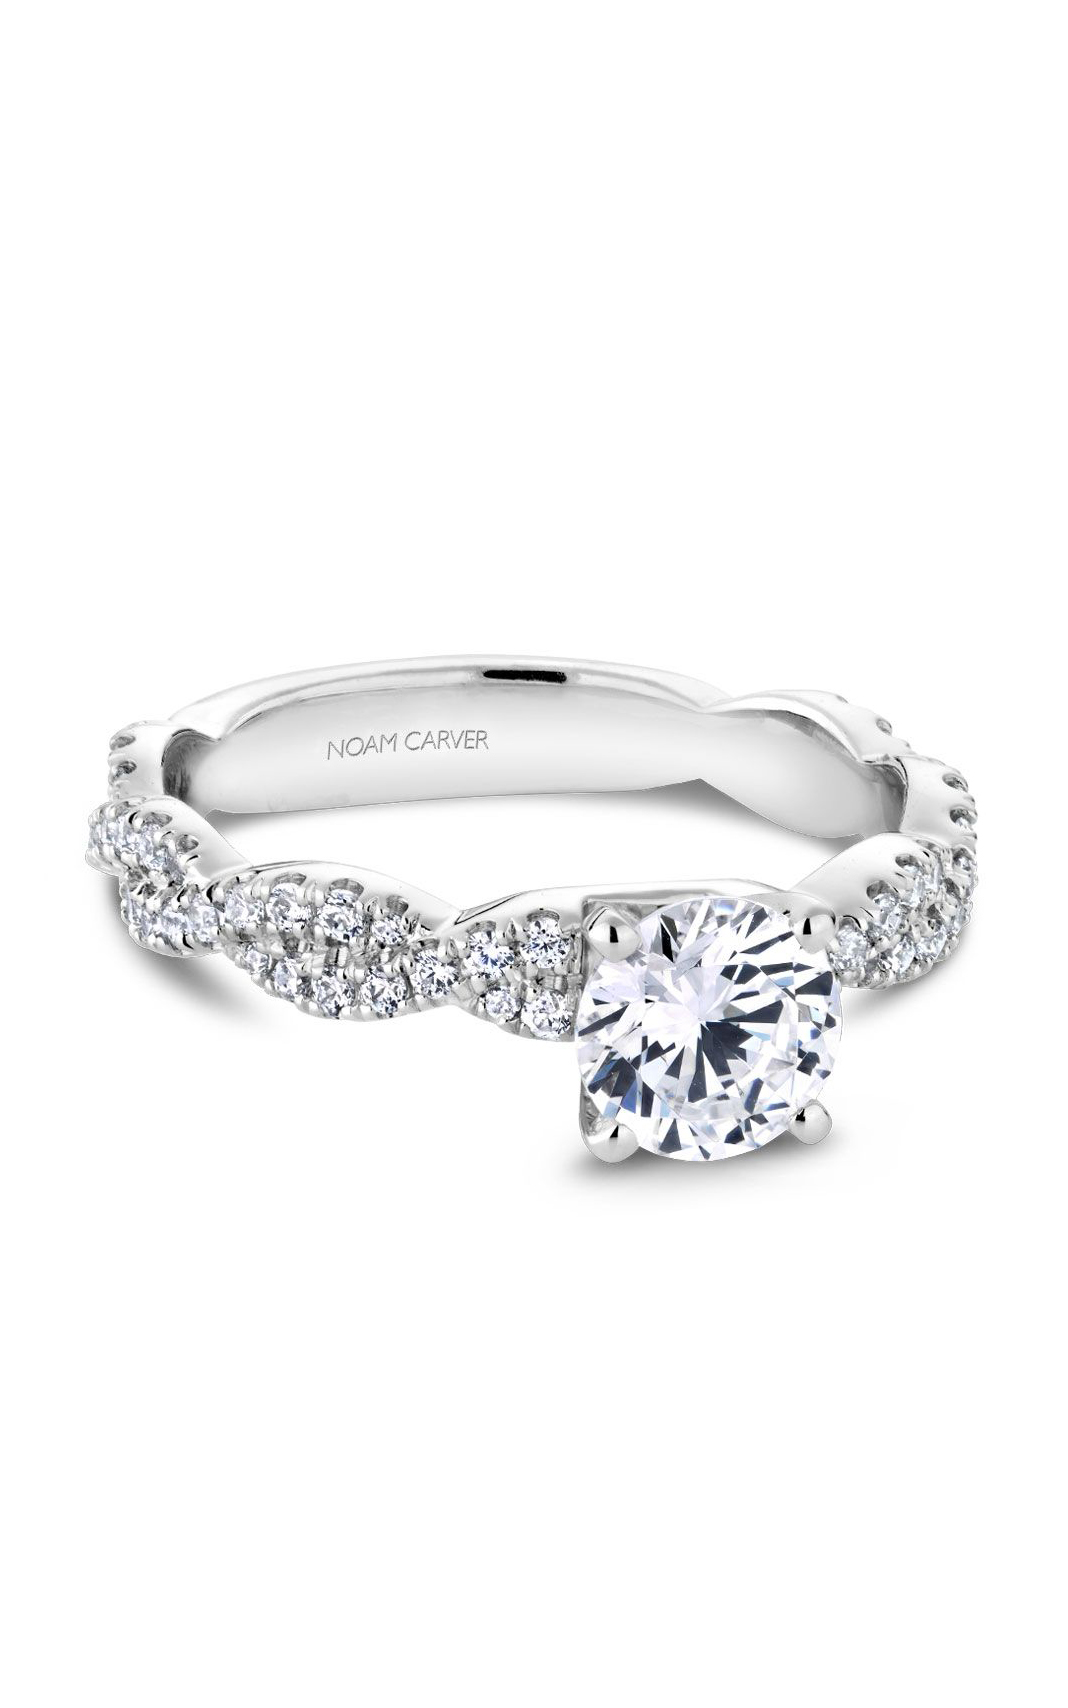 Noam Carver Modern Engagement Ring B166-01A product image